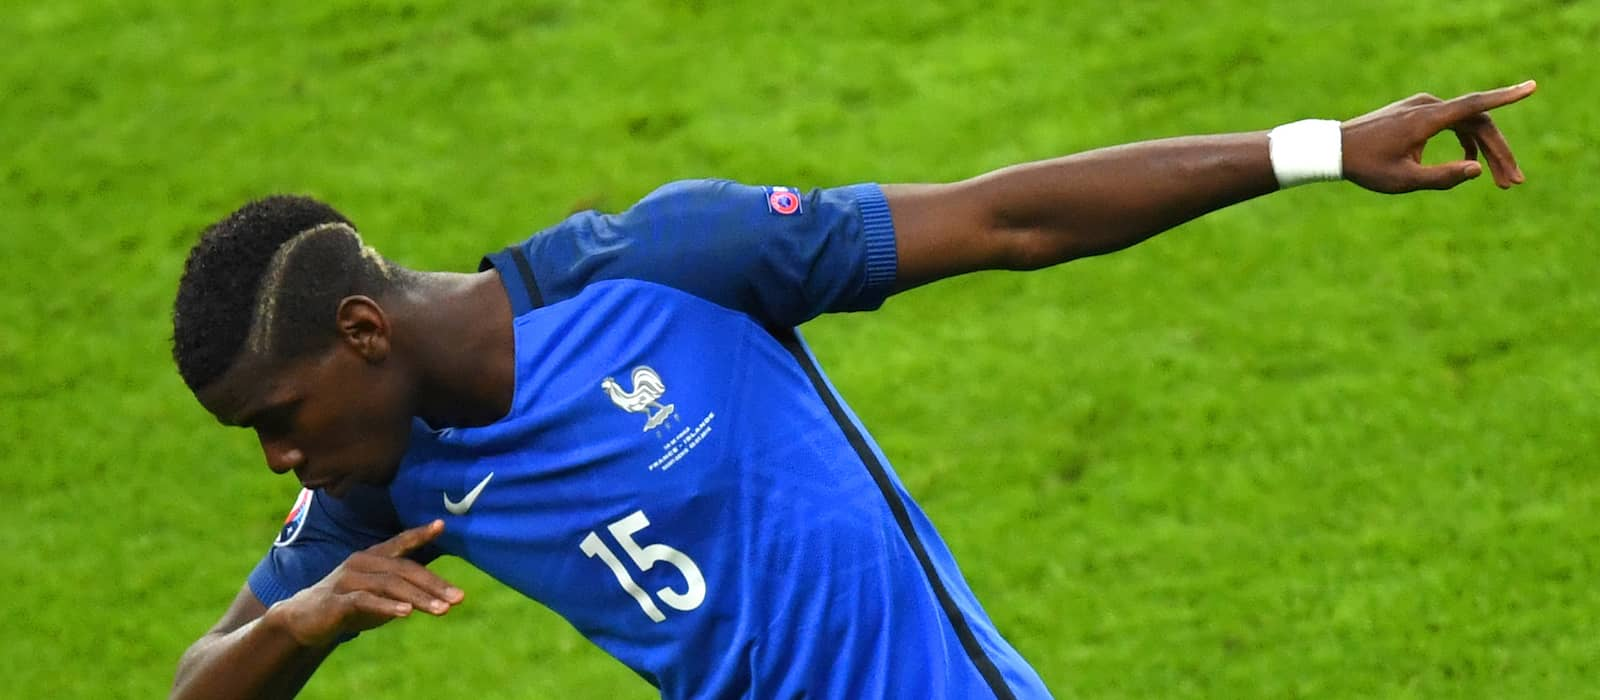 Guillem Balague: Real Madrid fear Manchester United sign Paul Pogba